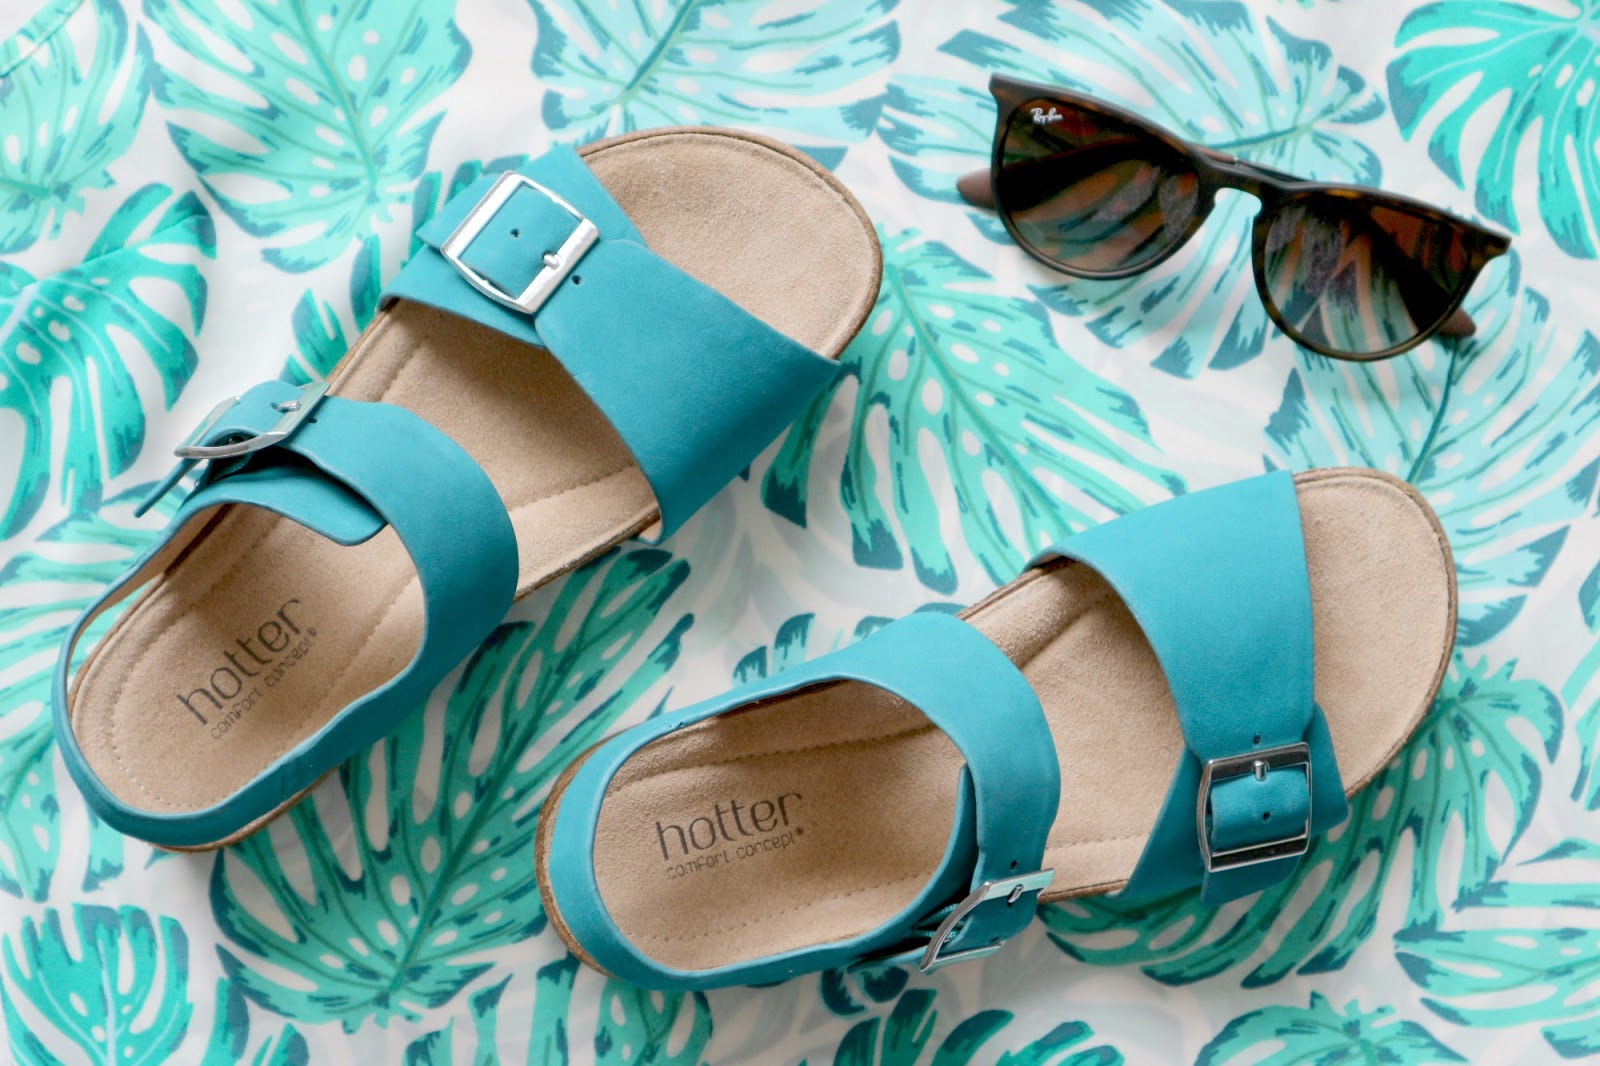 Hotter Sandals Ray-Ban Erika Review